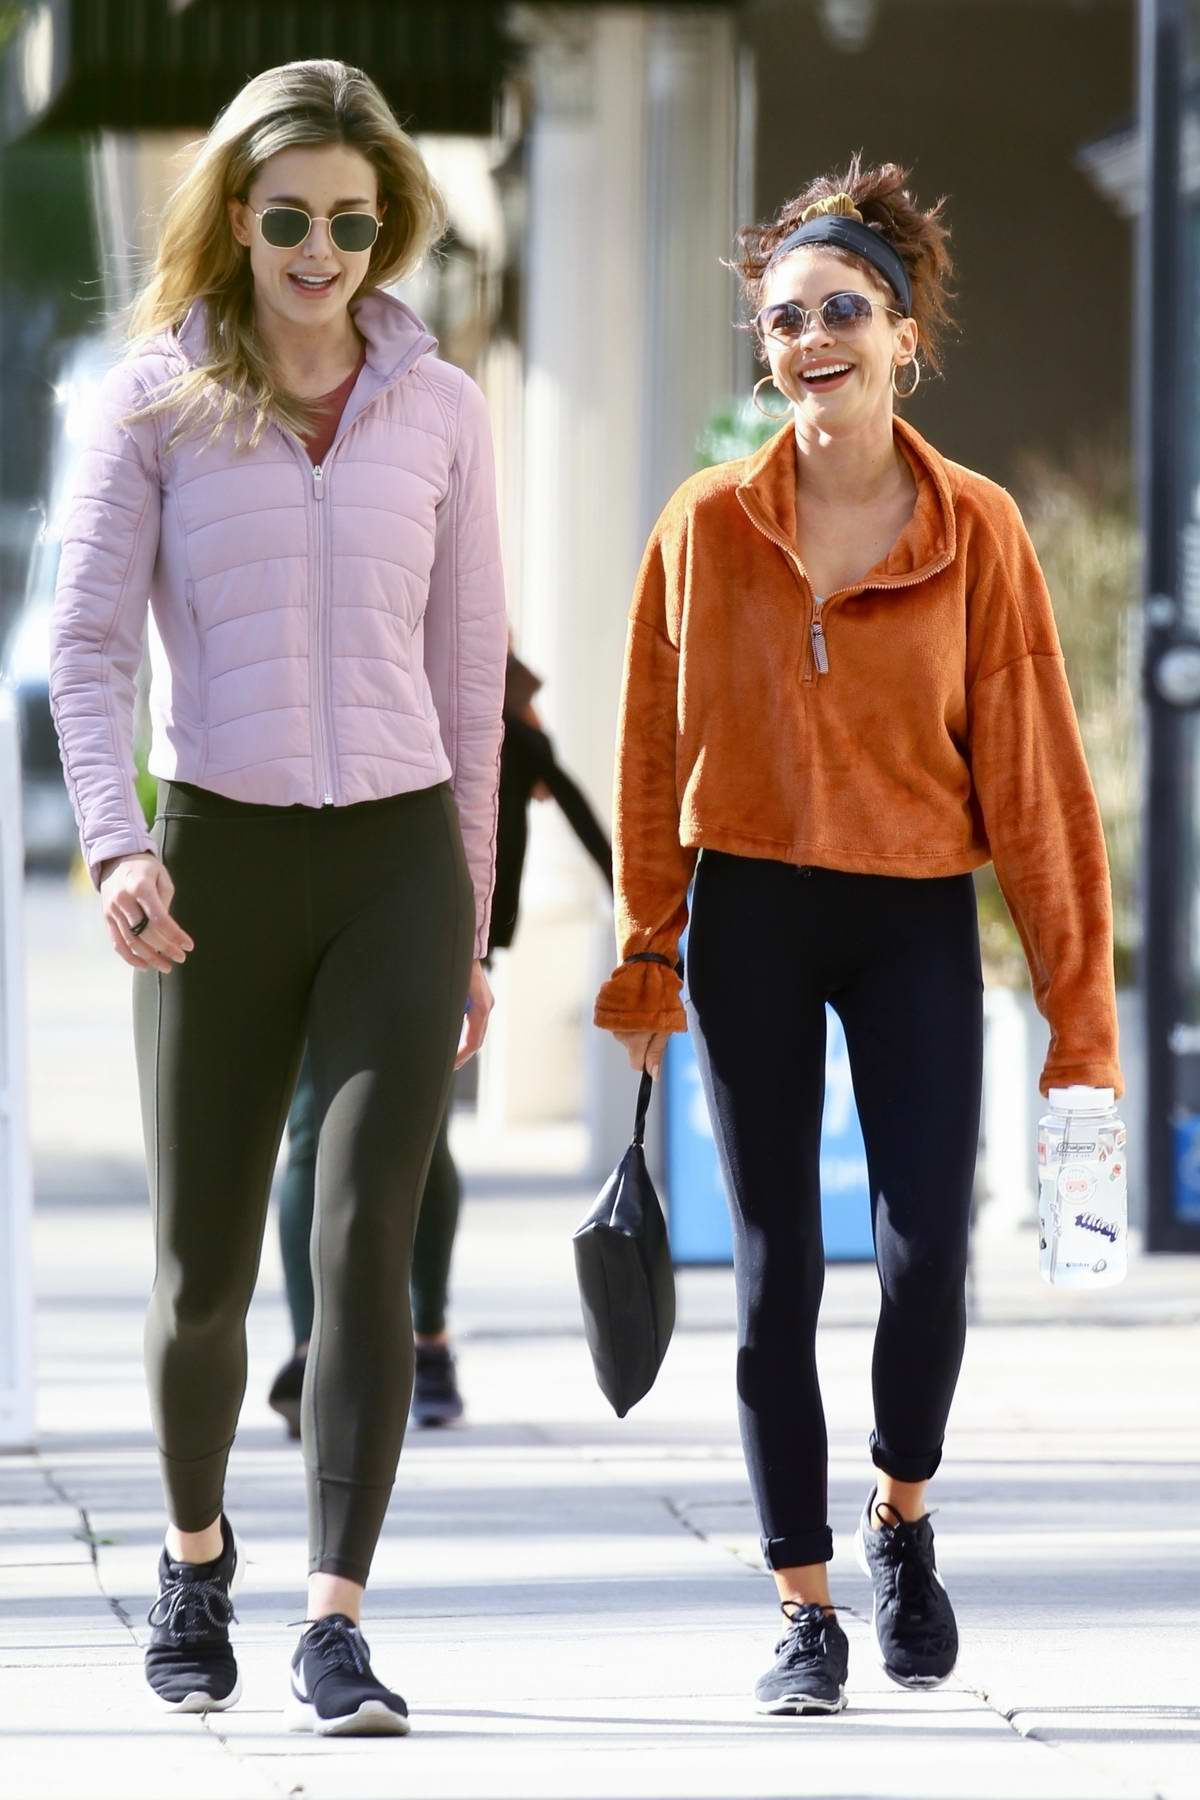 Sarah Hyland is all laughs and giggles as she steps out for lunch with a friend in Studio City, California